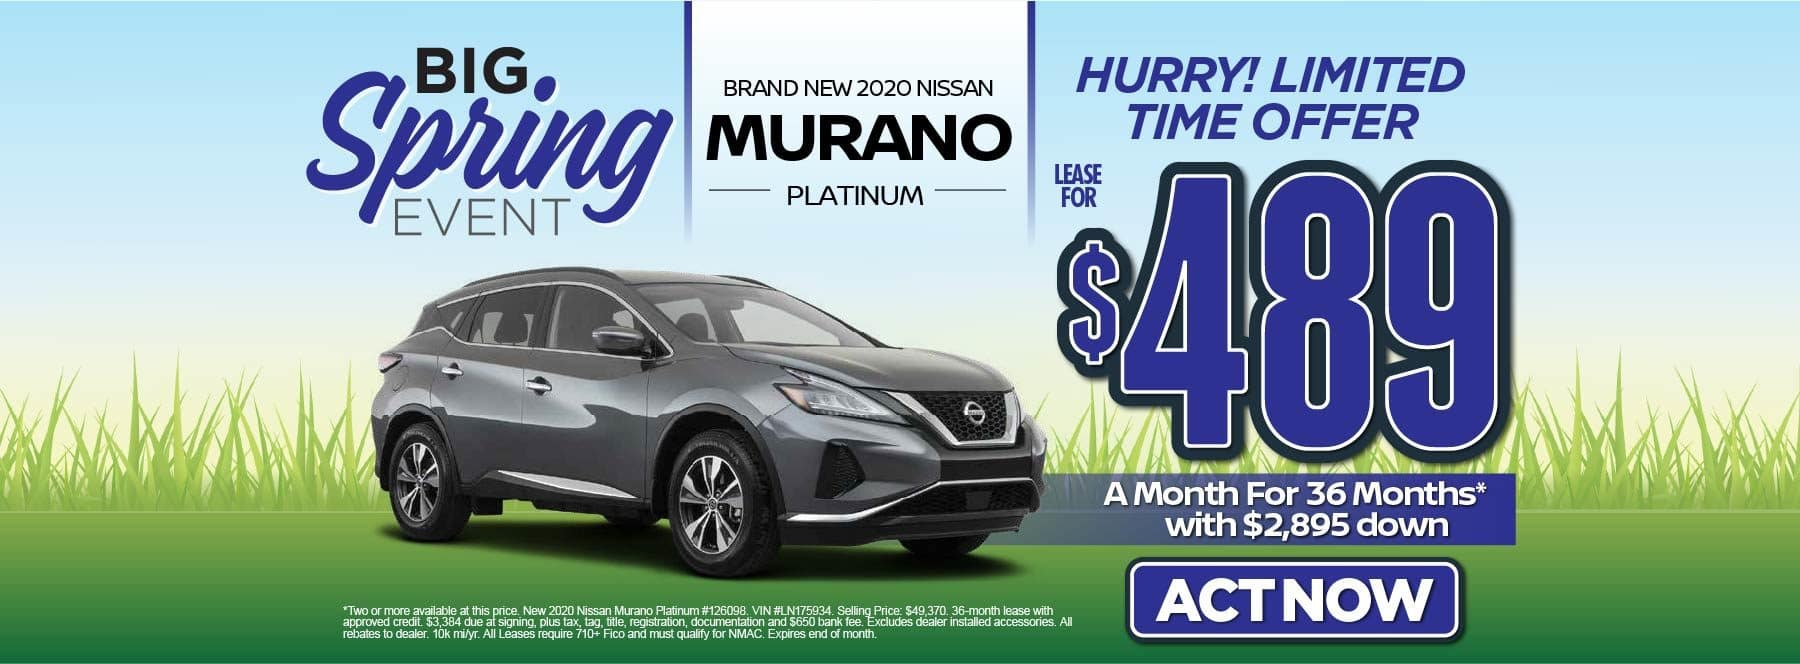 New 2020 Nissan Murano Platinum – Lease for $489/mo for 36 months with $2,895 Down* Act now.